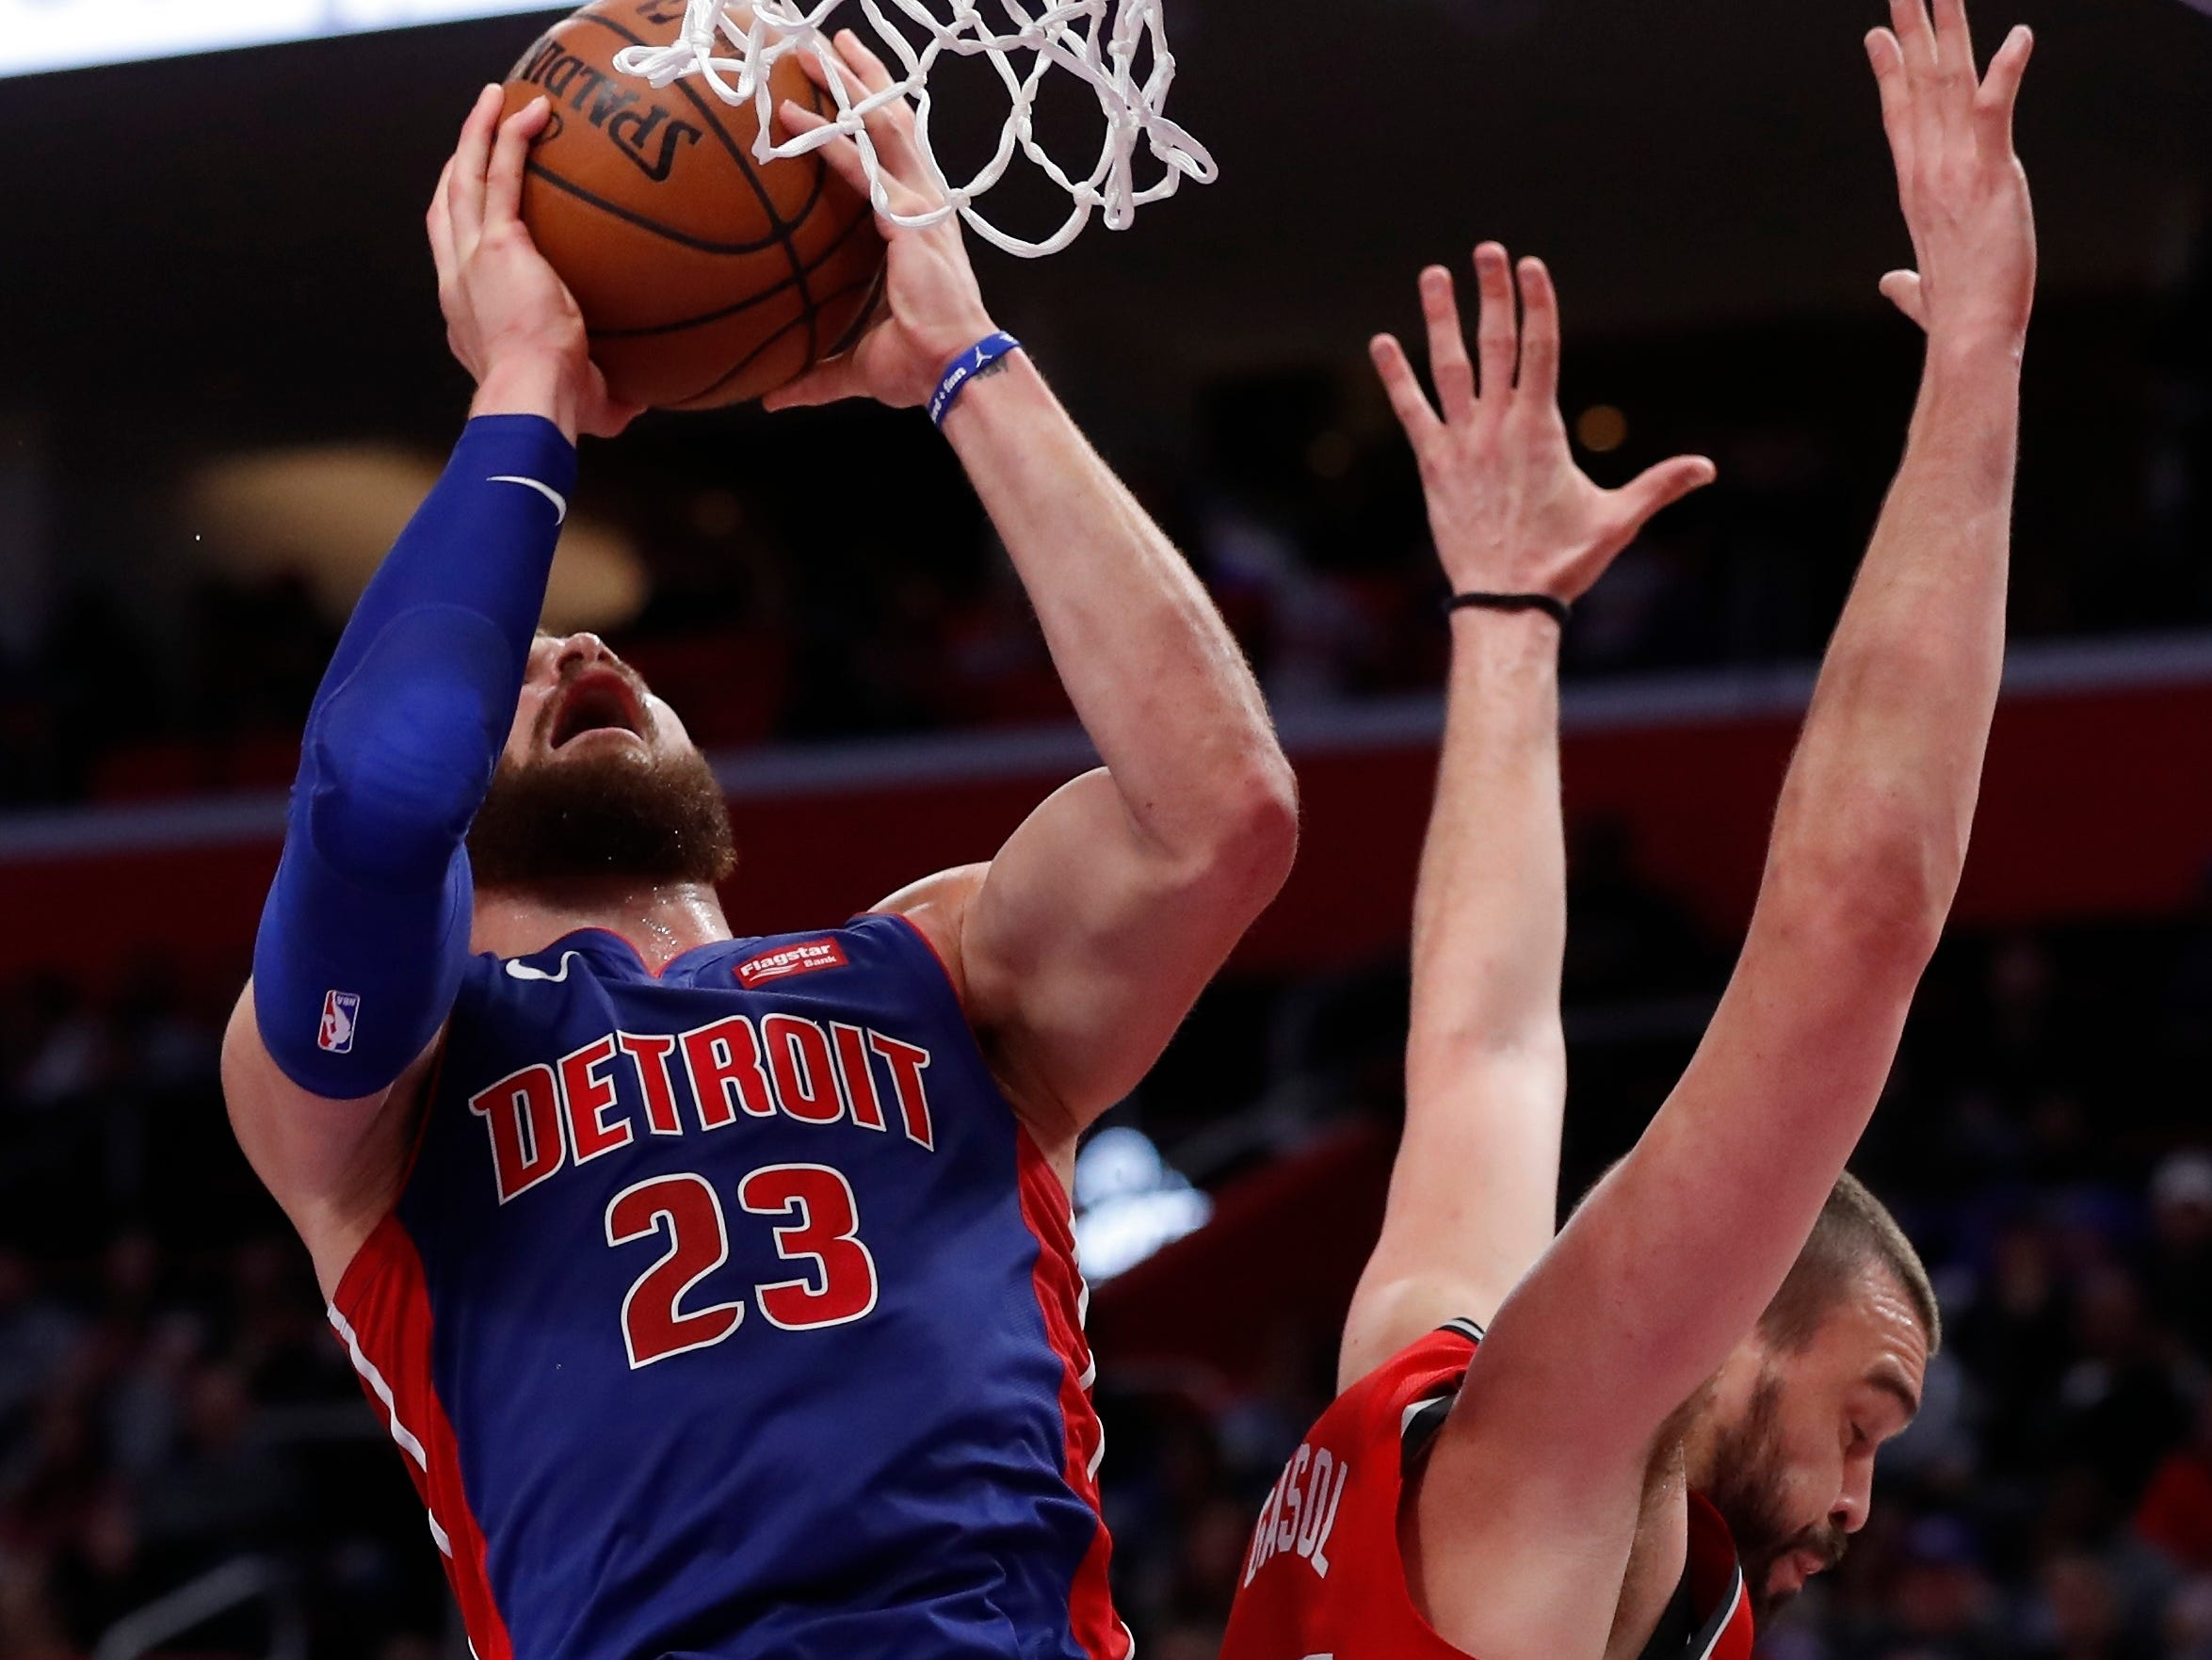 Detroit Pistons forward Blake Griffin (23) shoots as Toronto Raptors center Marc Gasol (33) defends during the first half.